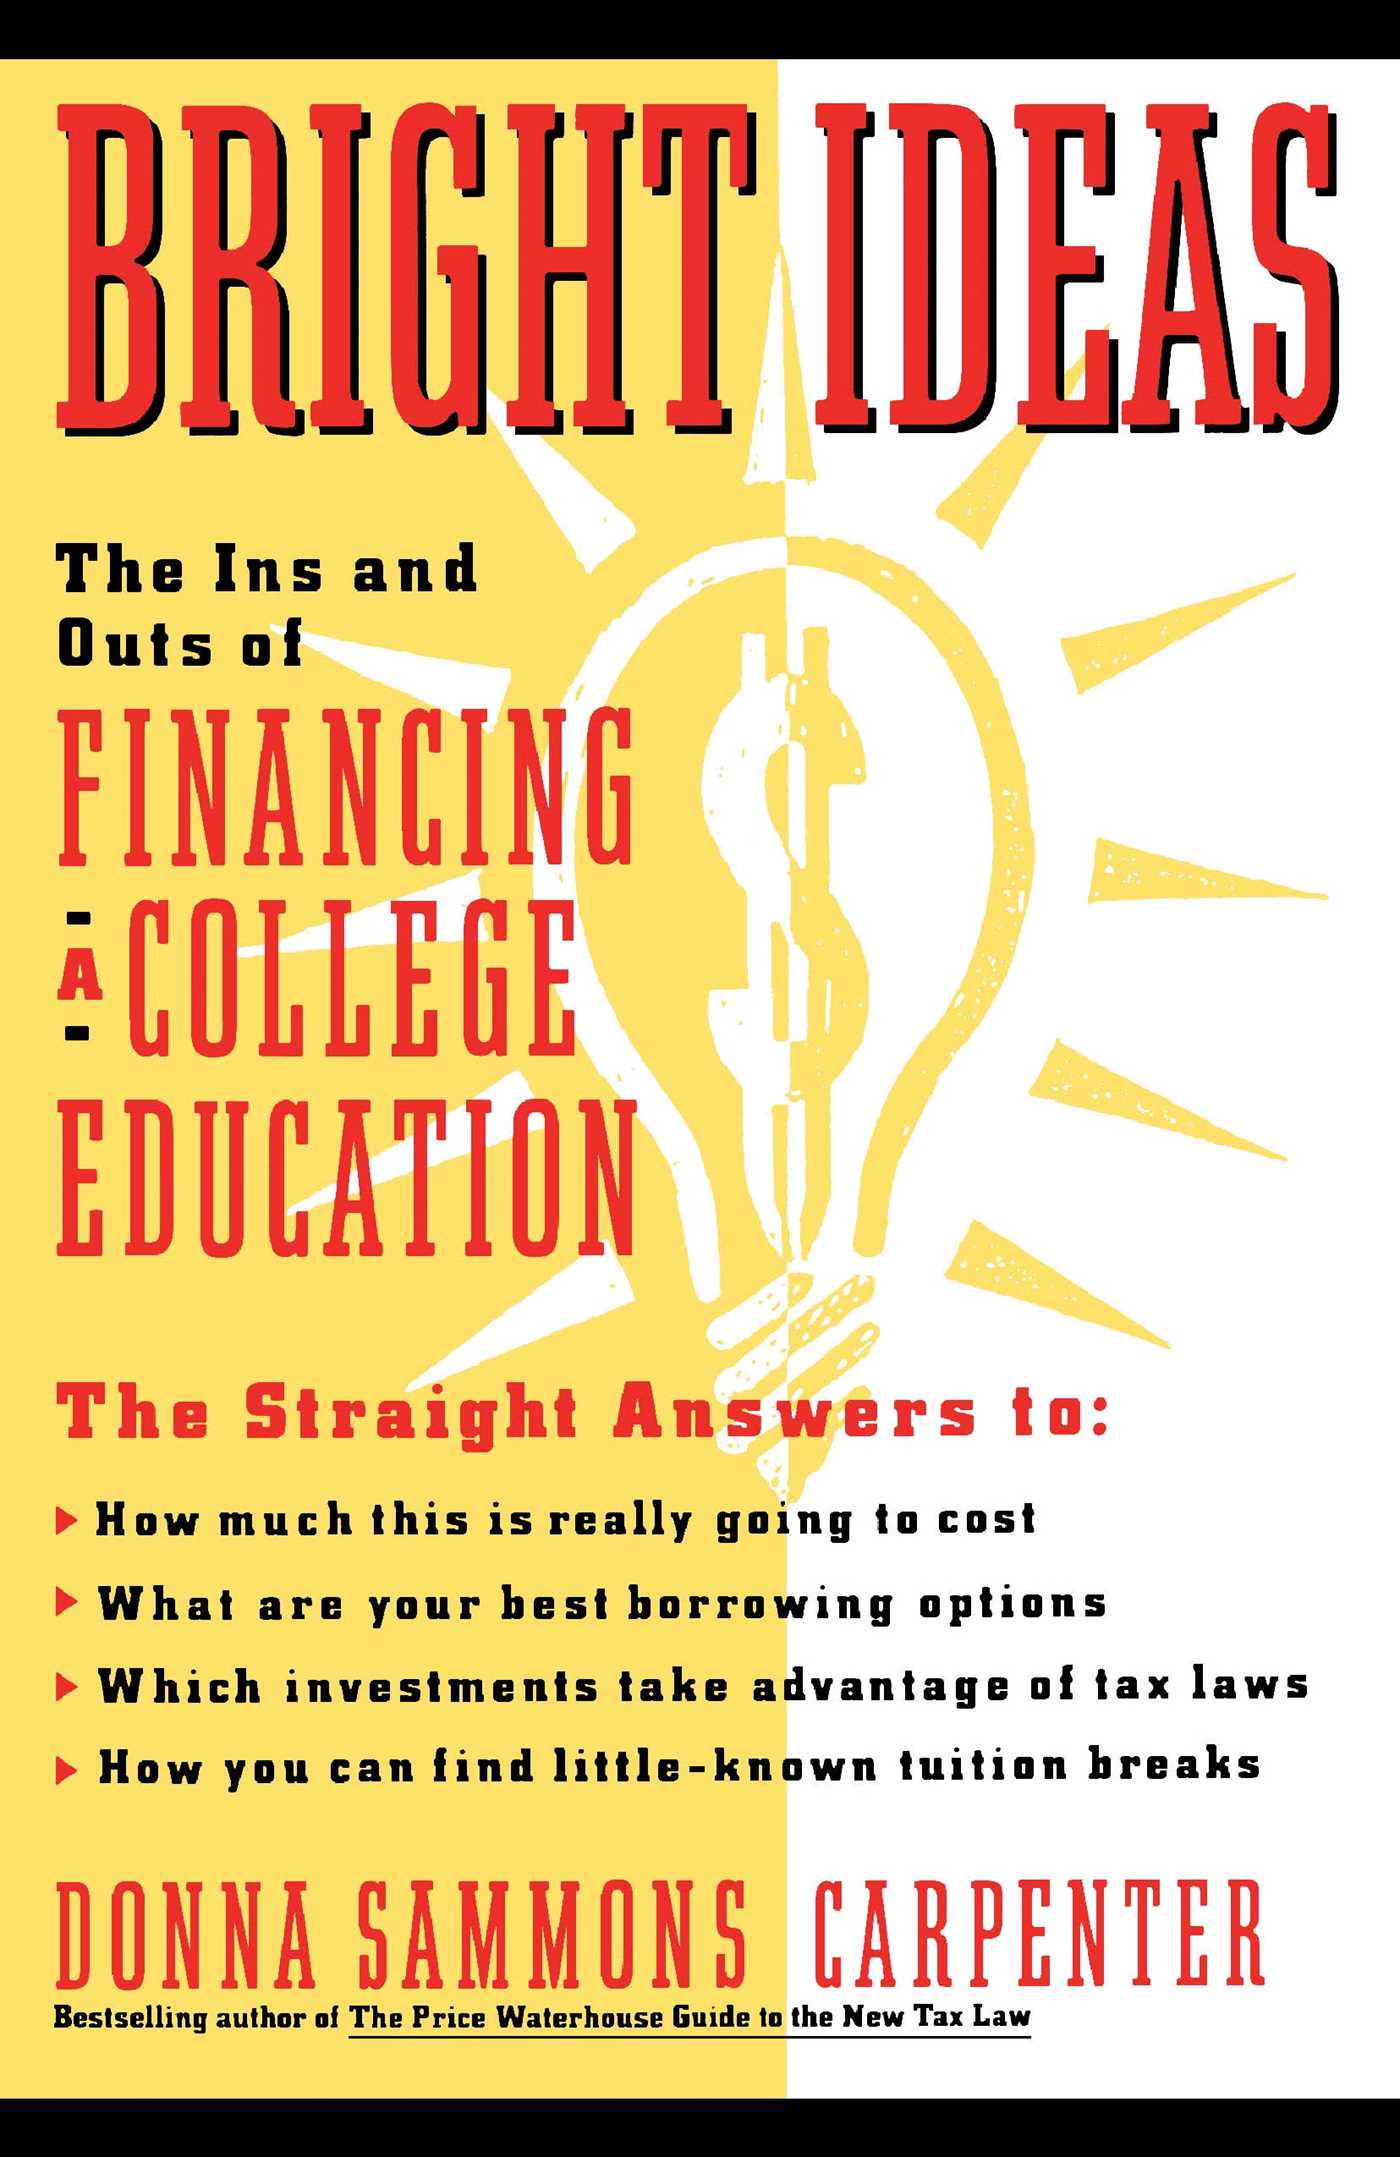 Bright-ideas-the-ins-outs-of-financing-a-college-education-9781439144893_hr